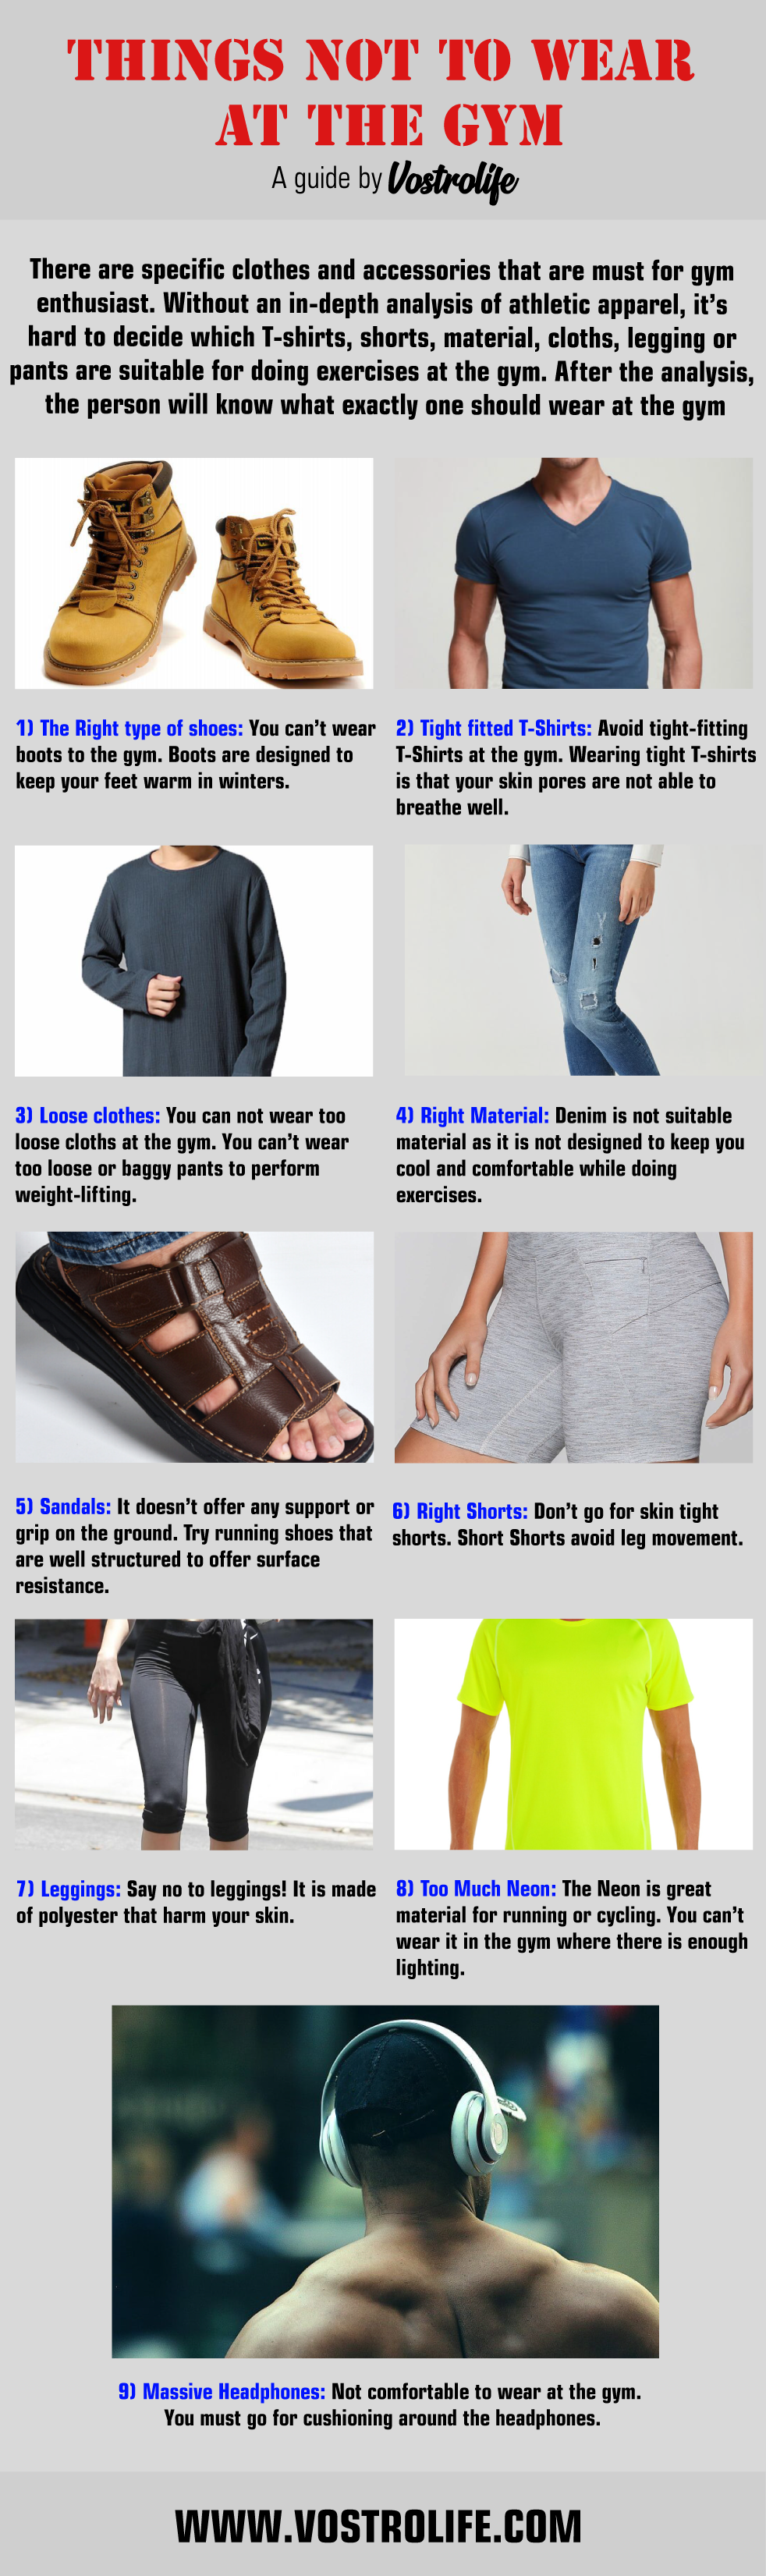 9 Things You Should Never Wear To The Gym - Vostrolife